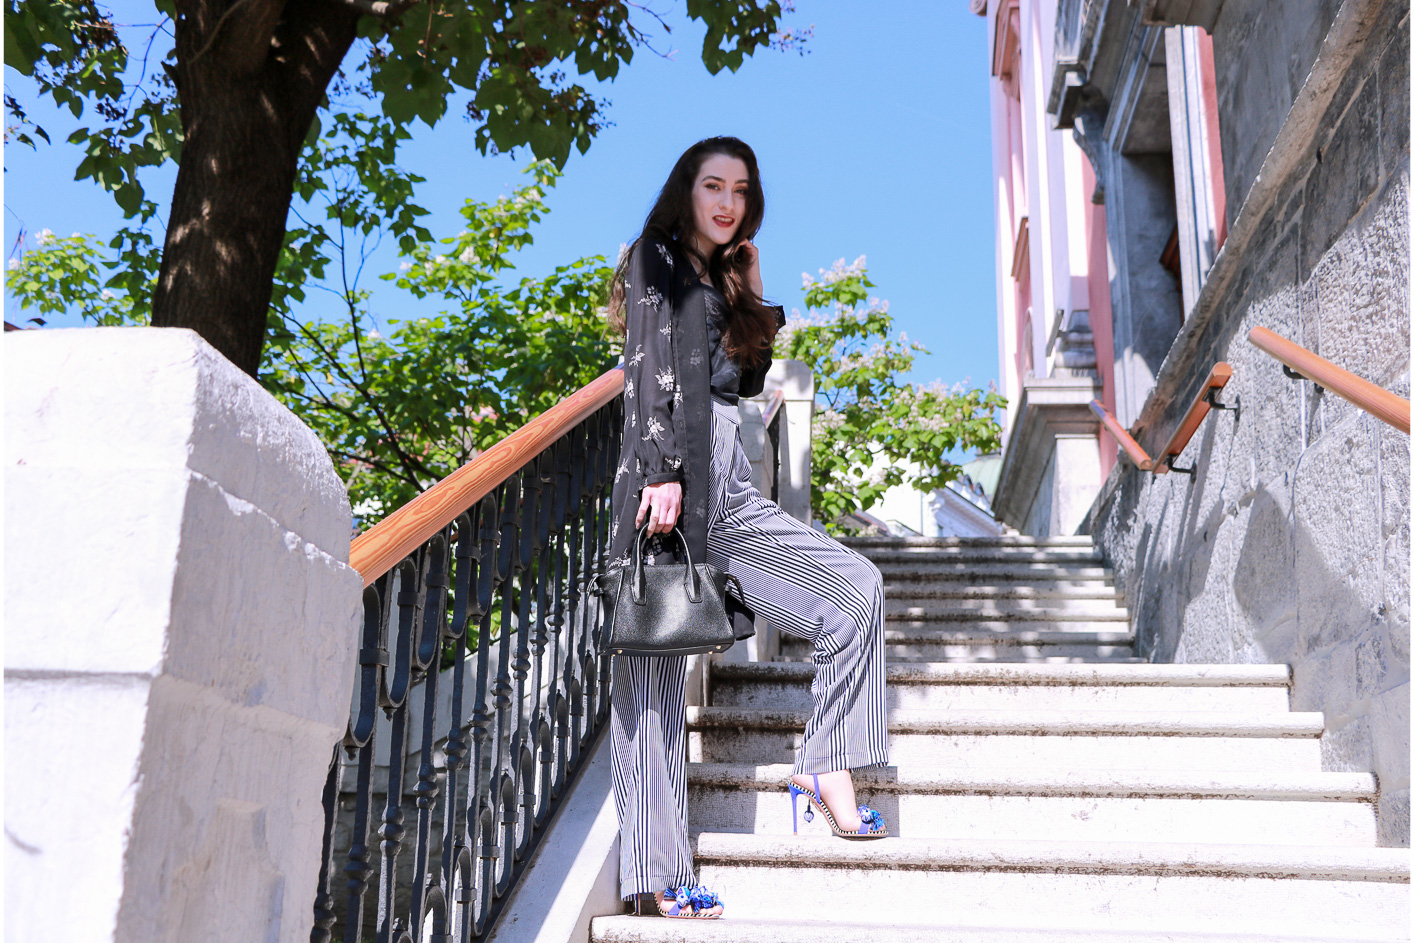 Fashion blogger Veronika Lipar of Brunette From Wall Street in Ljubljana wearing long layers this summer in shirtdress and wide-leg pants